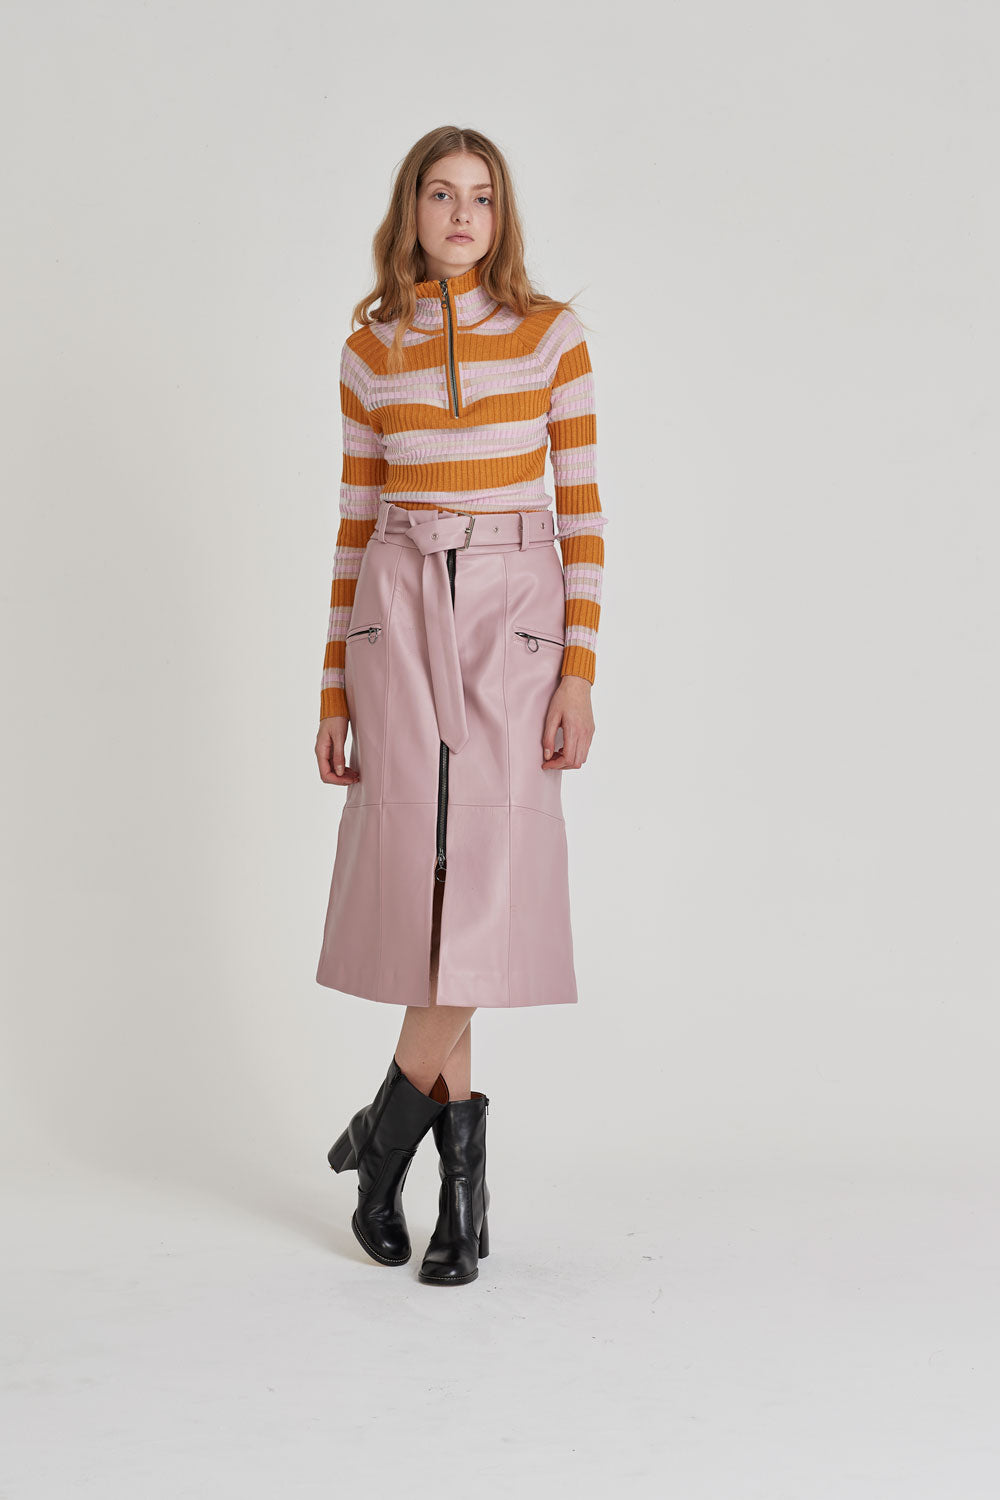 Harlow Sweater Pink/Orange - Wynn Hamlyn — Shop